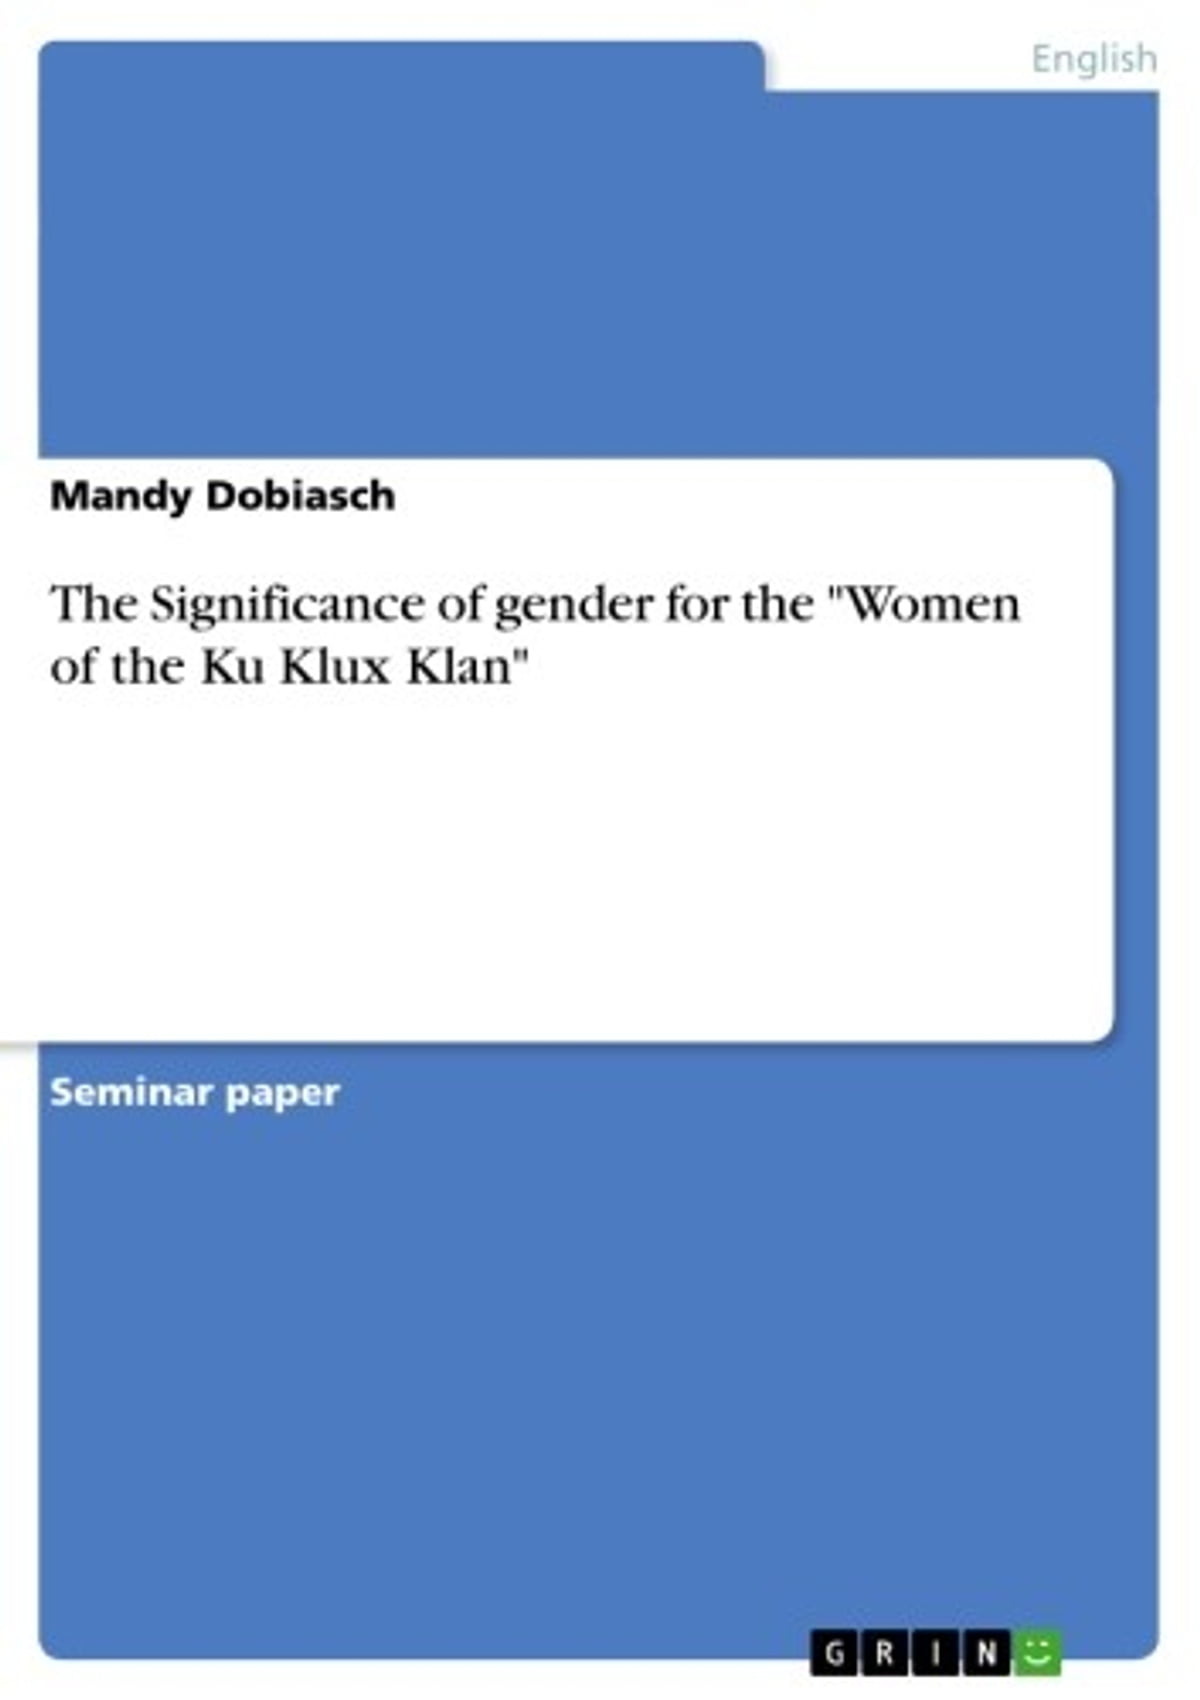 Libros Sobre El Ku Klux Klan The Significance Of Gender For The Women Of The Ku Klux Klan Ebook By Mandy Dobiasch Rakuten Kobo